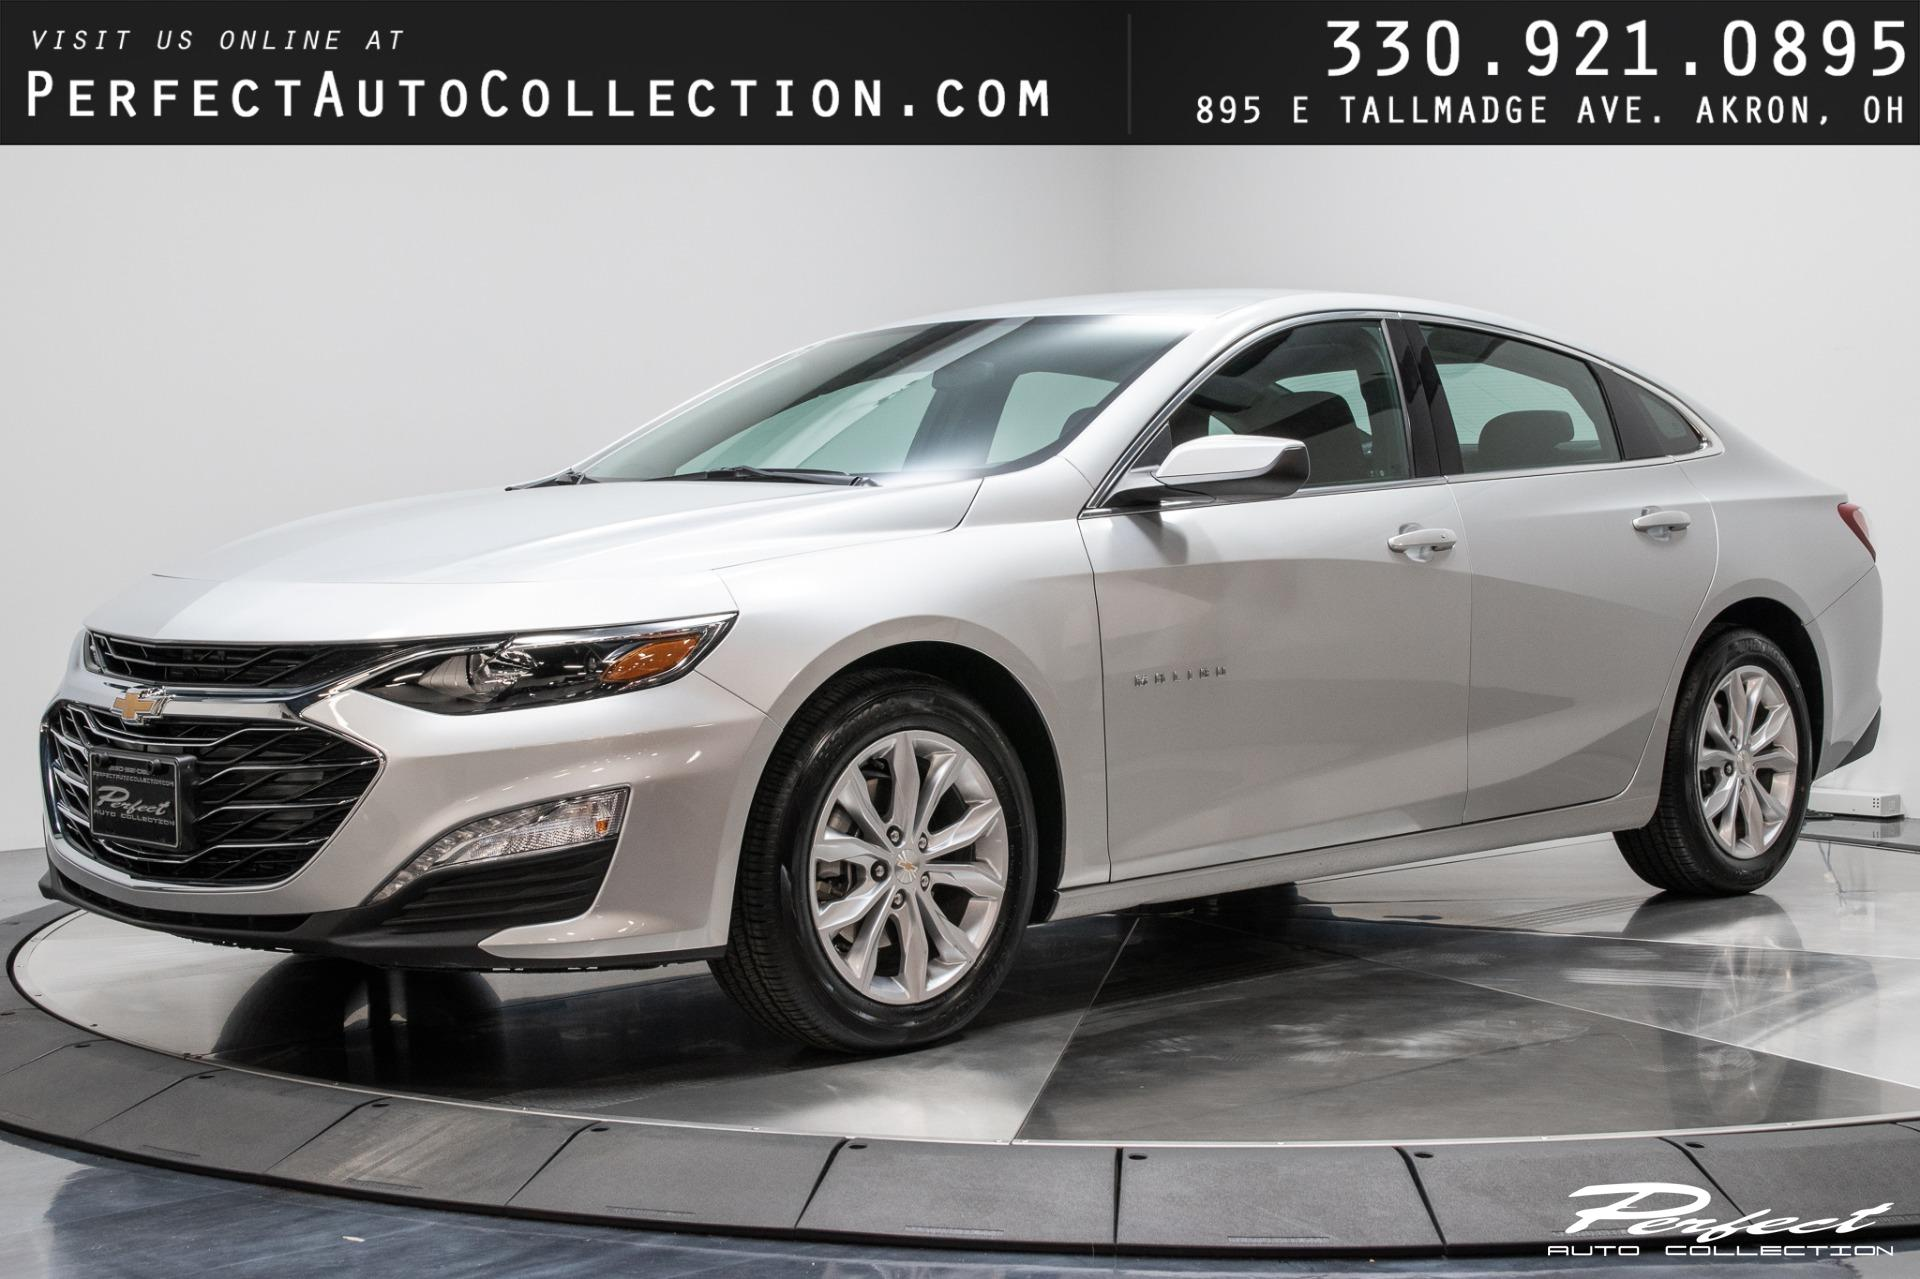 Used 2020 Chevrolet Malibu LT for sale Sold at Perfect Auto Collection in Akron OH 44310 1